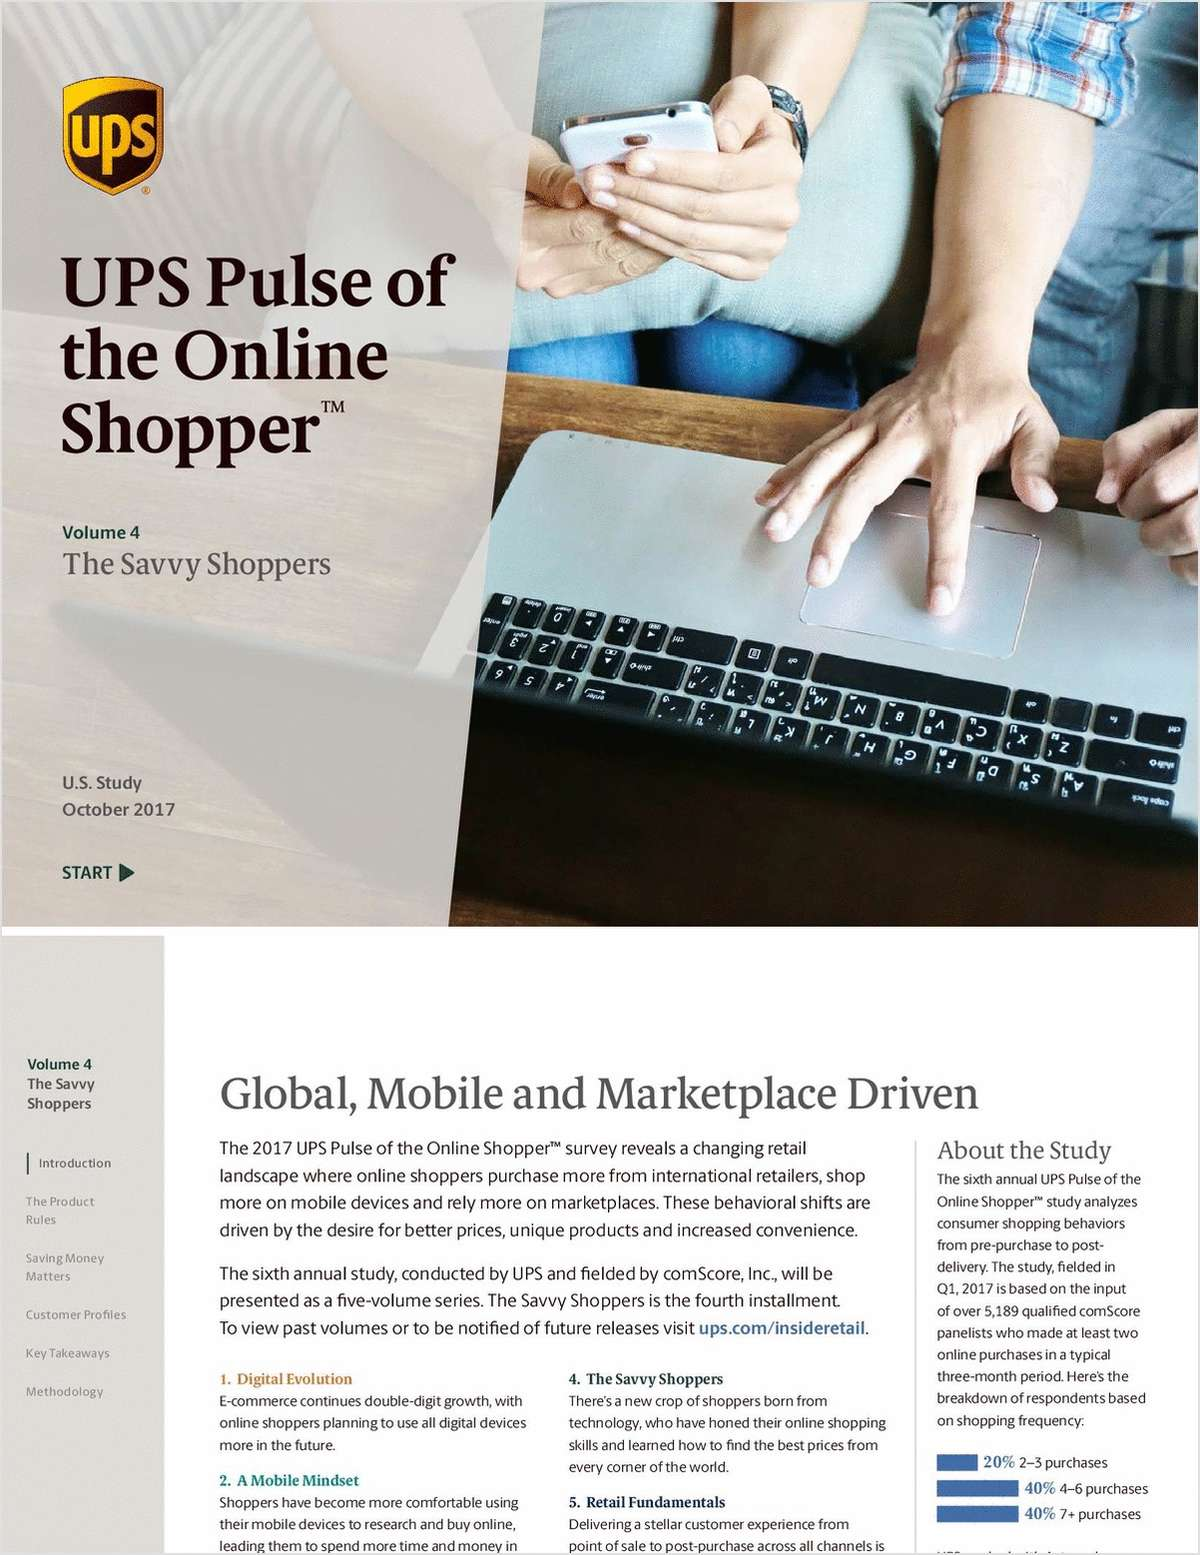 2017 UPS Pulse of the Online Shopper™ The Savvy Shoppers